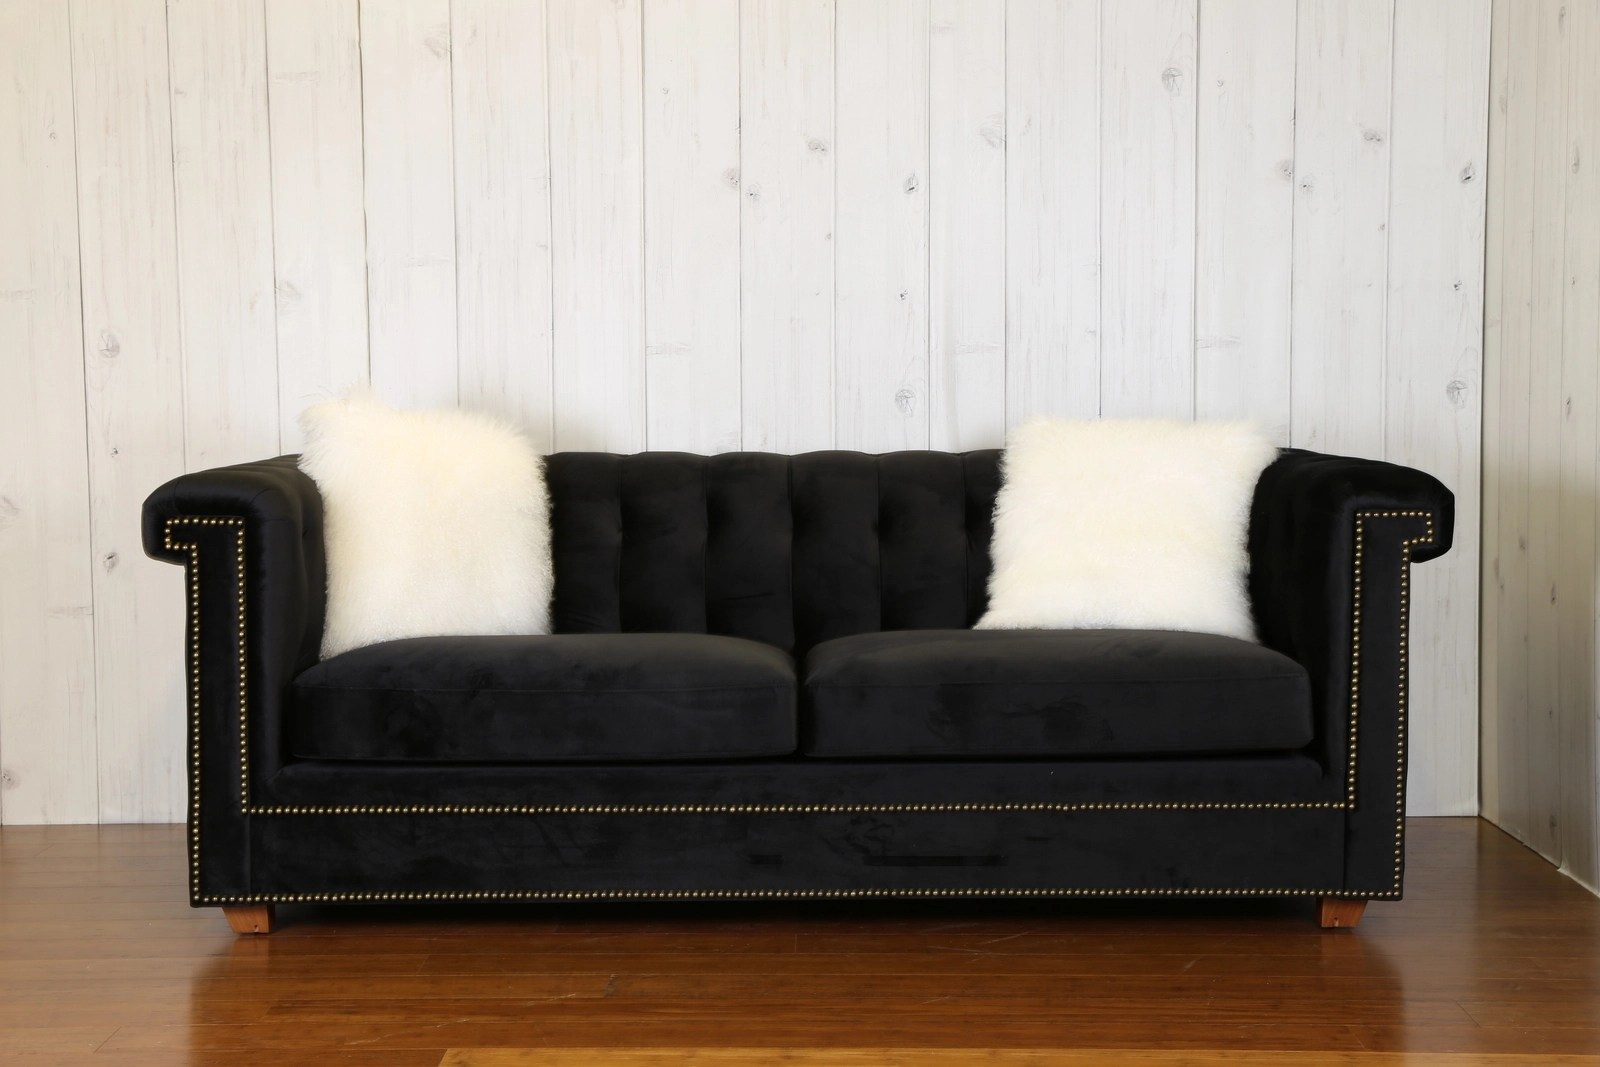 chelsea square sofa oversized outdoor cushions